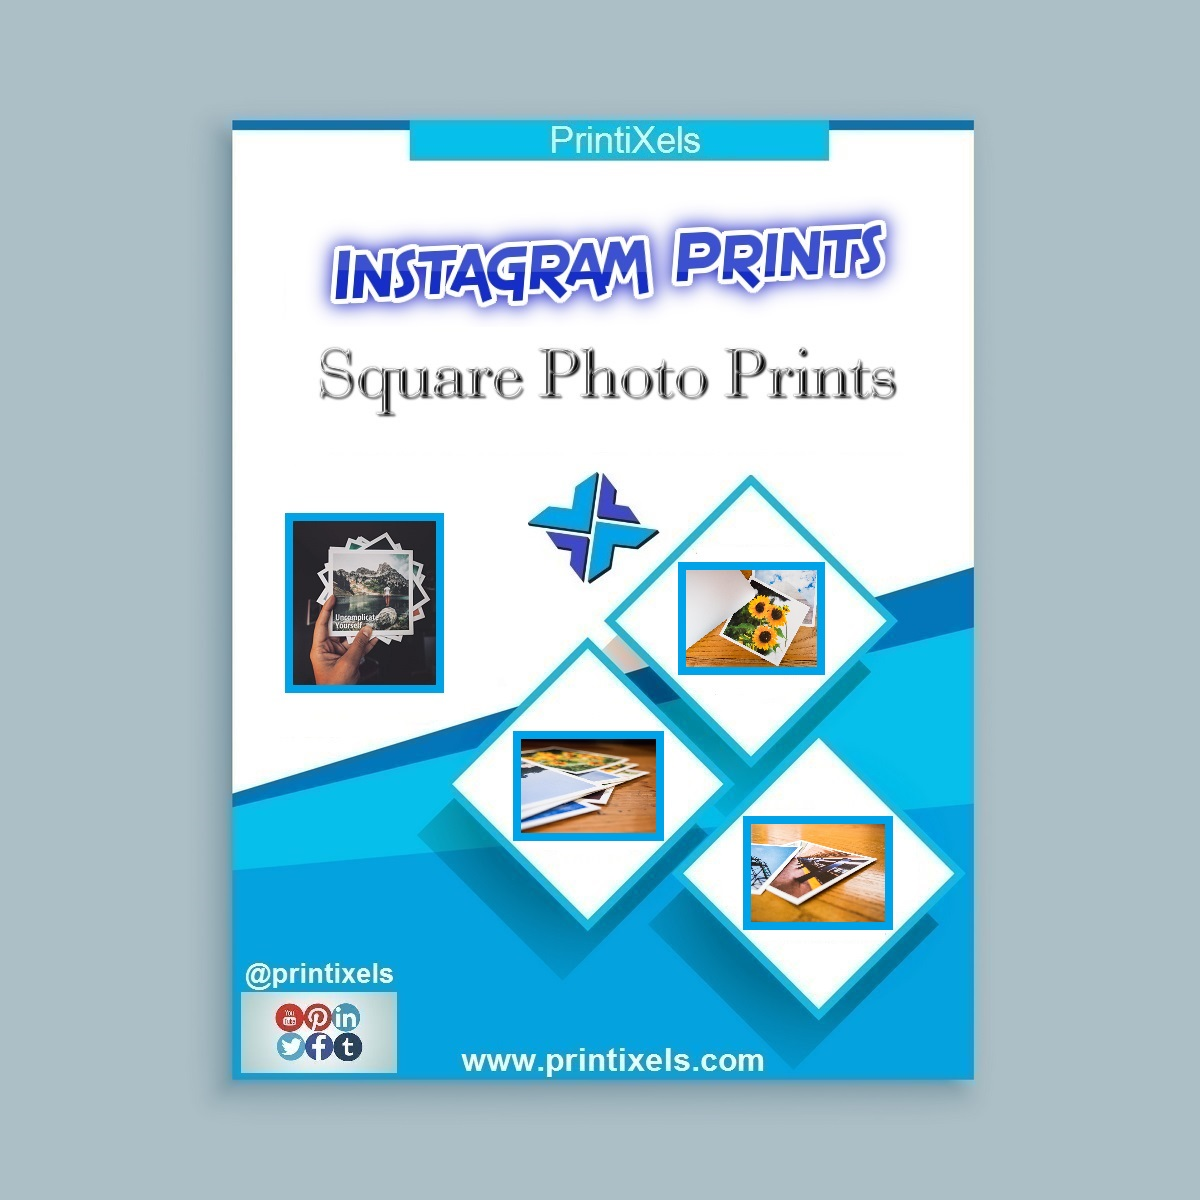 Instagram Prints, Square Photo Prints Online